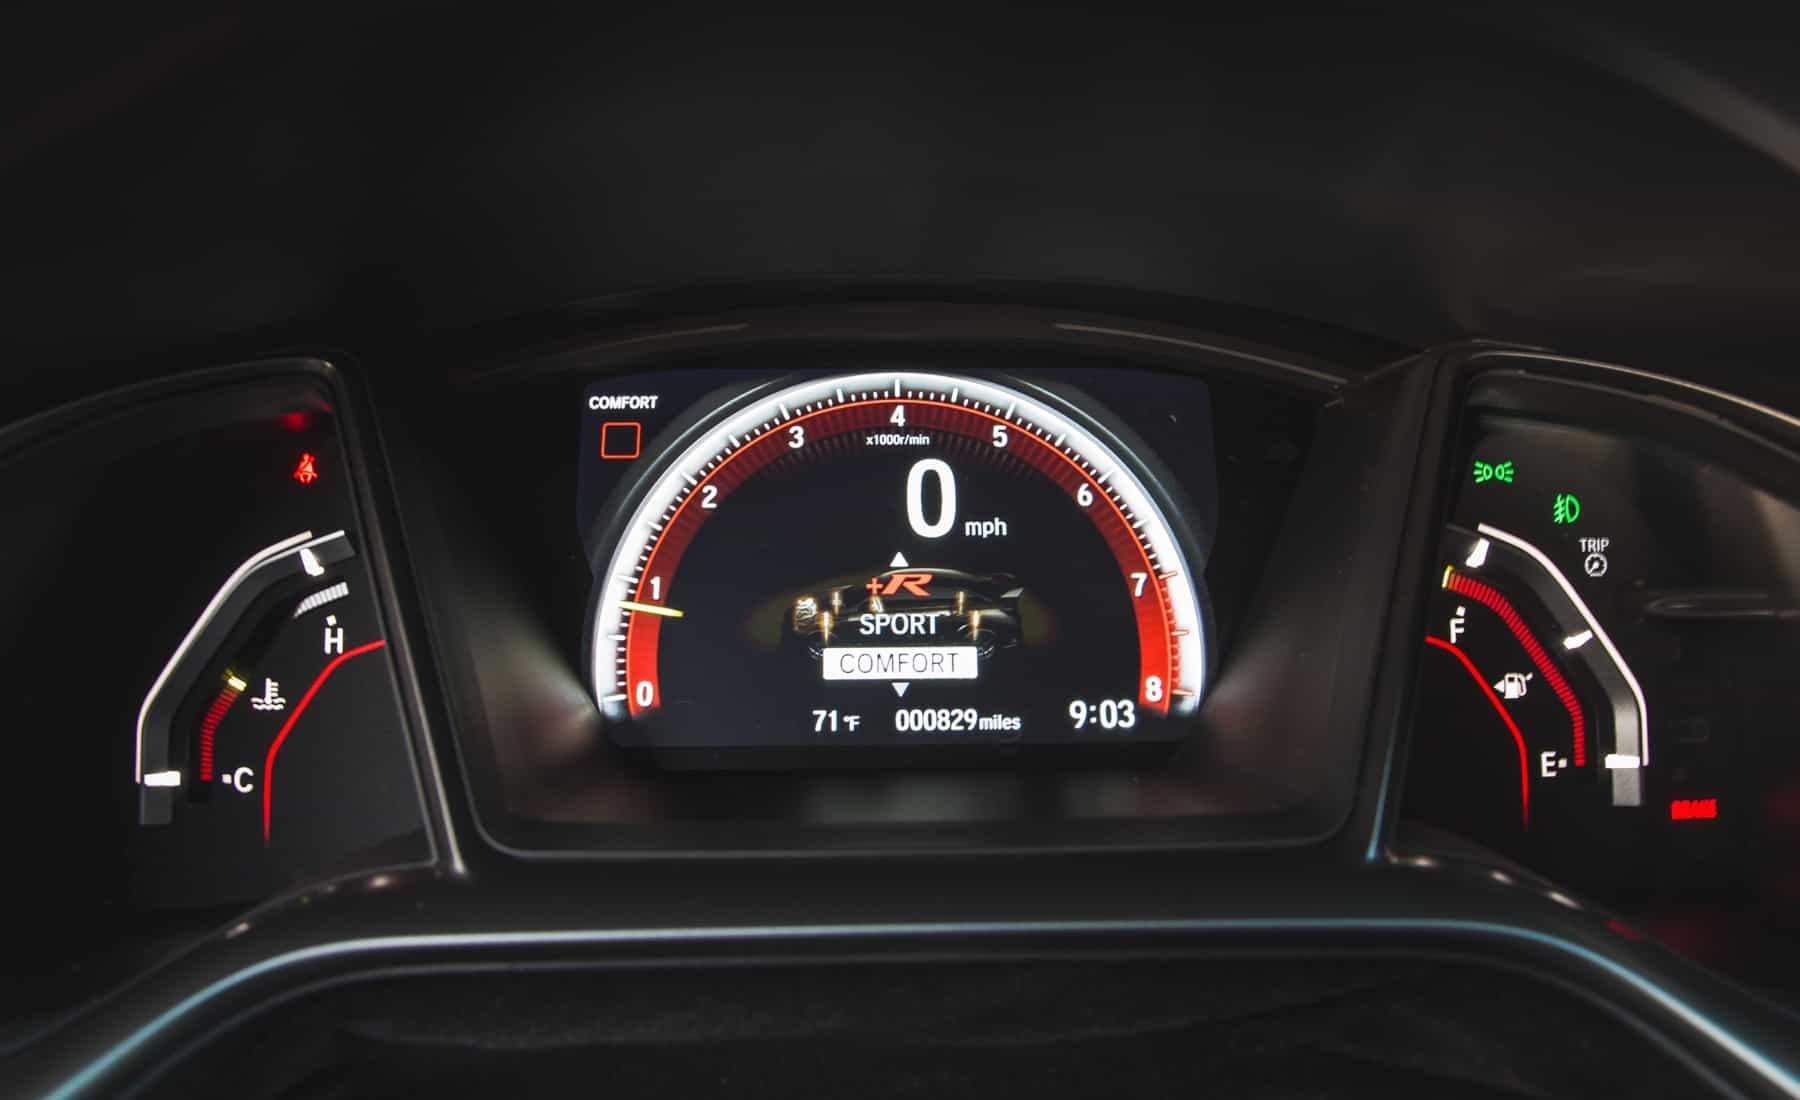 2017 Honda Civic Type R Interior View Speedometer (Photo 18 of 48)